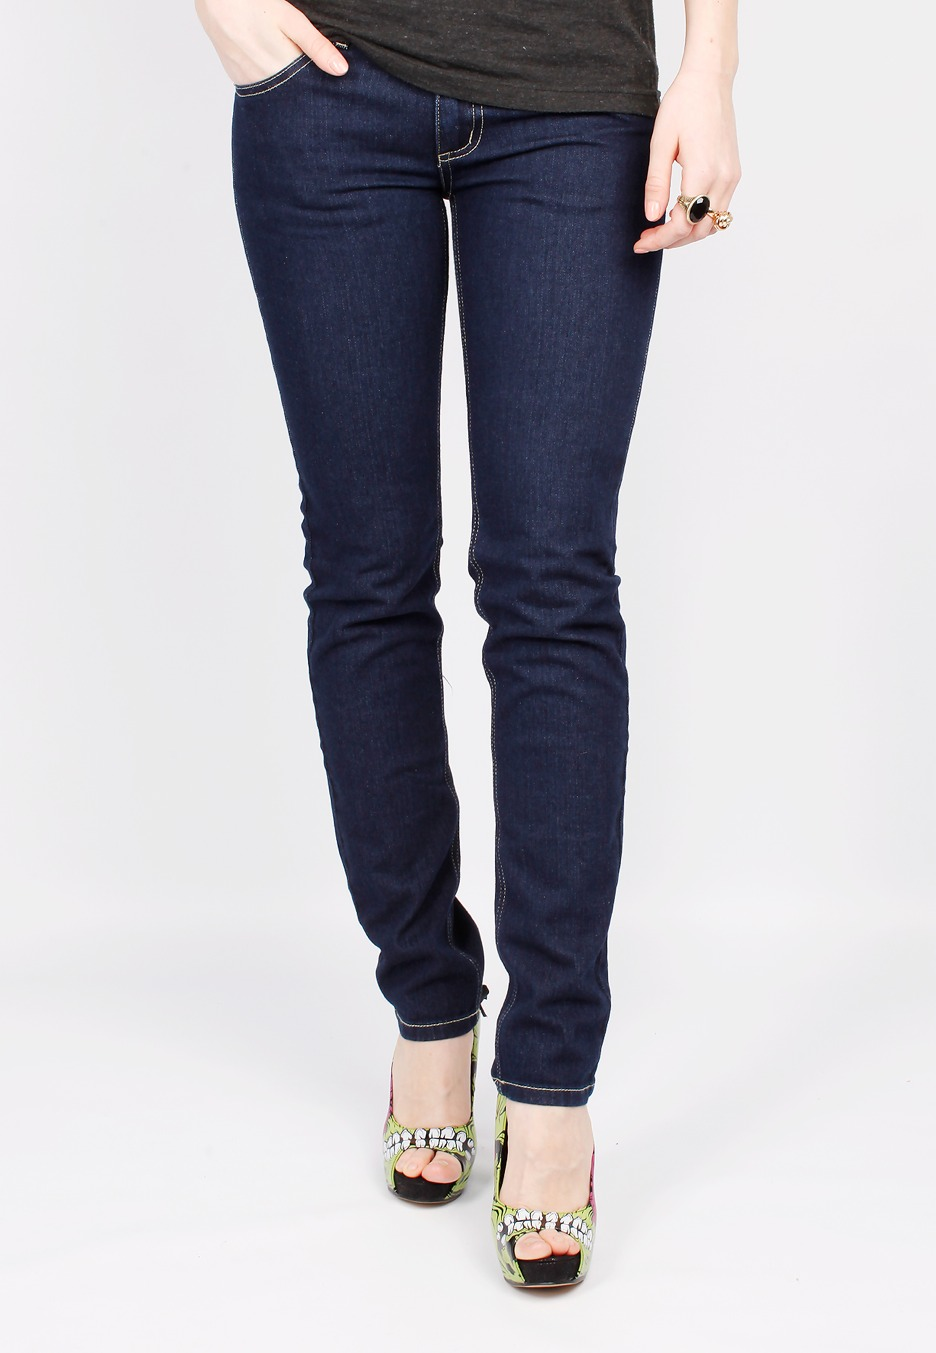 Cheap Monday - Zip Low Dark Blue - Girl Jeans - Impericon.com UK